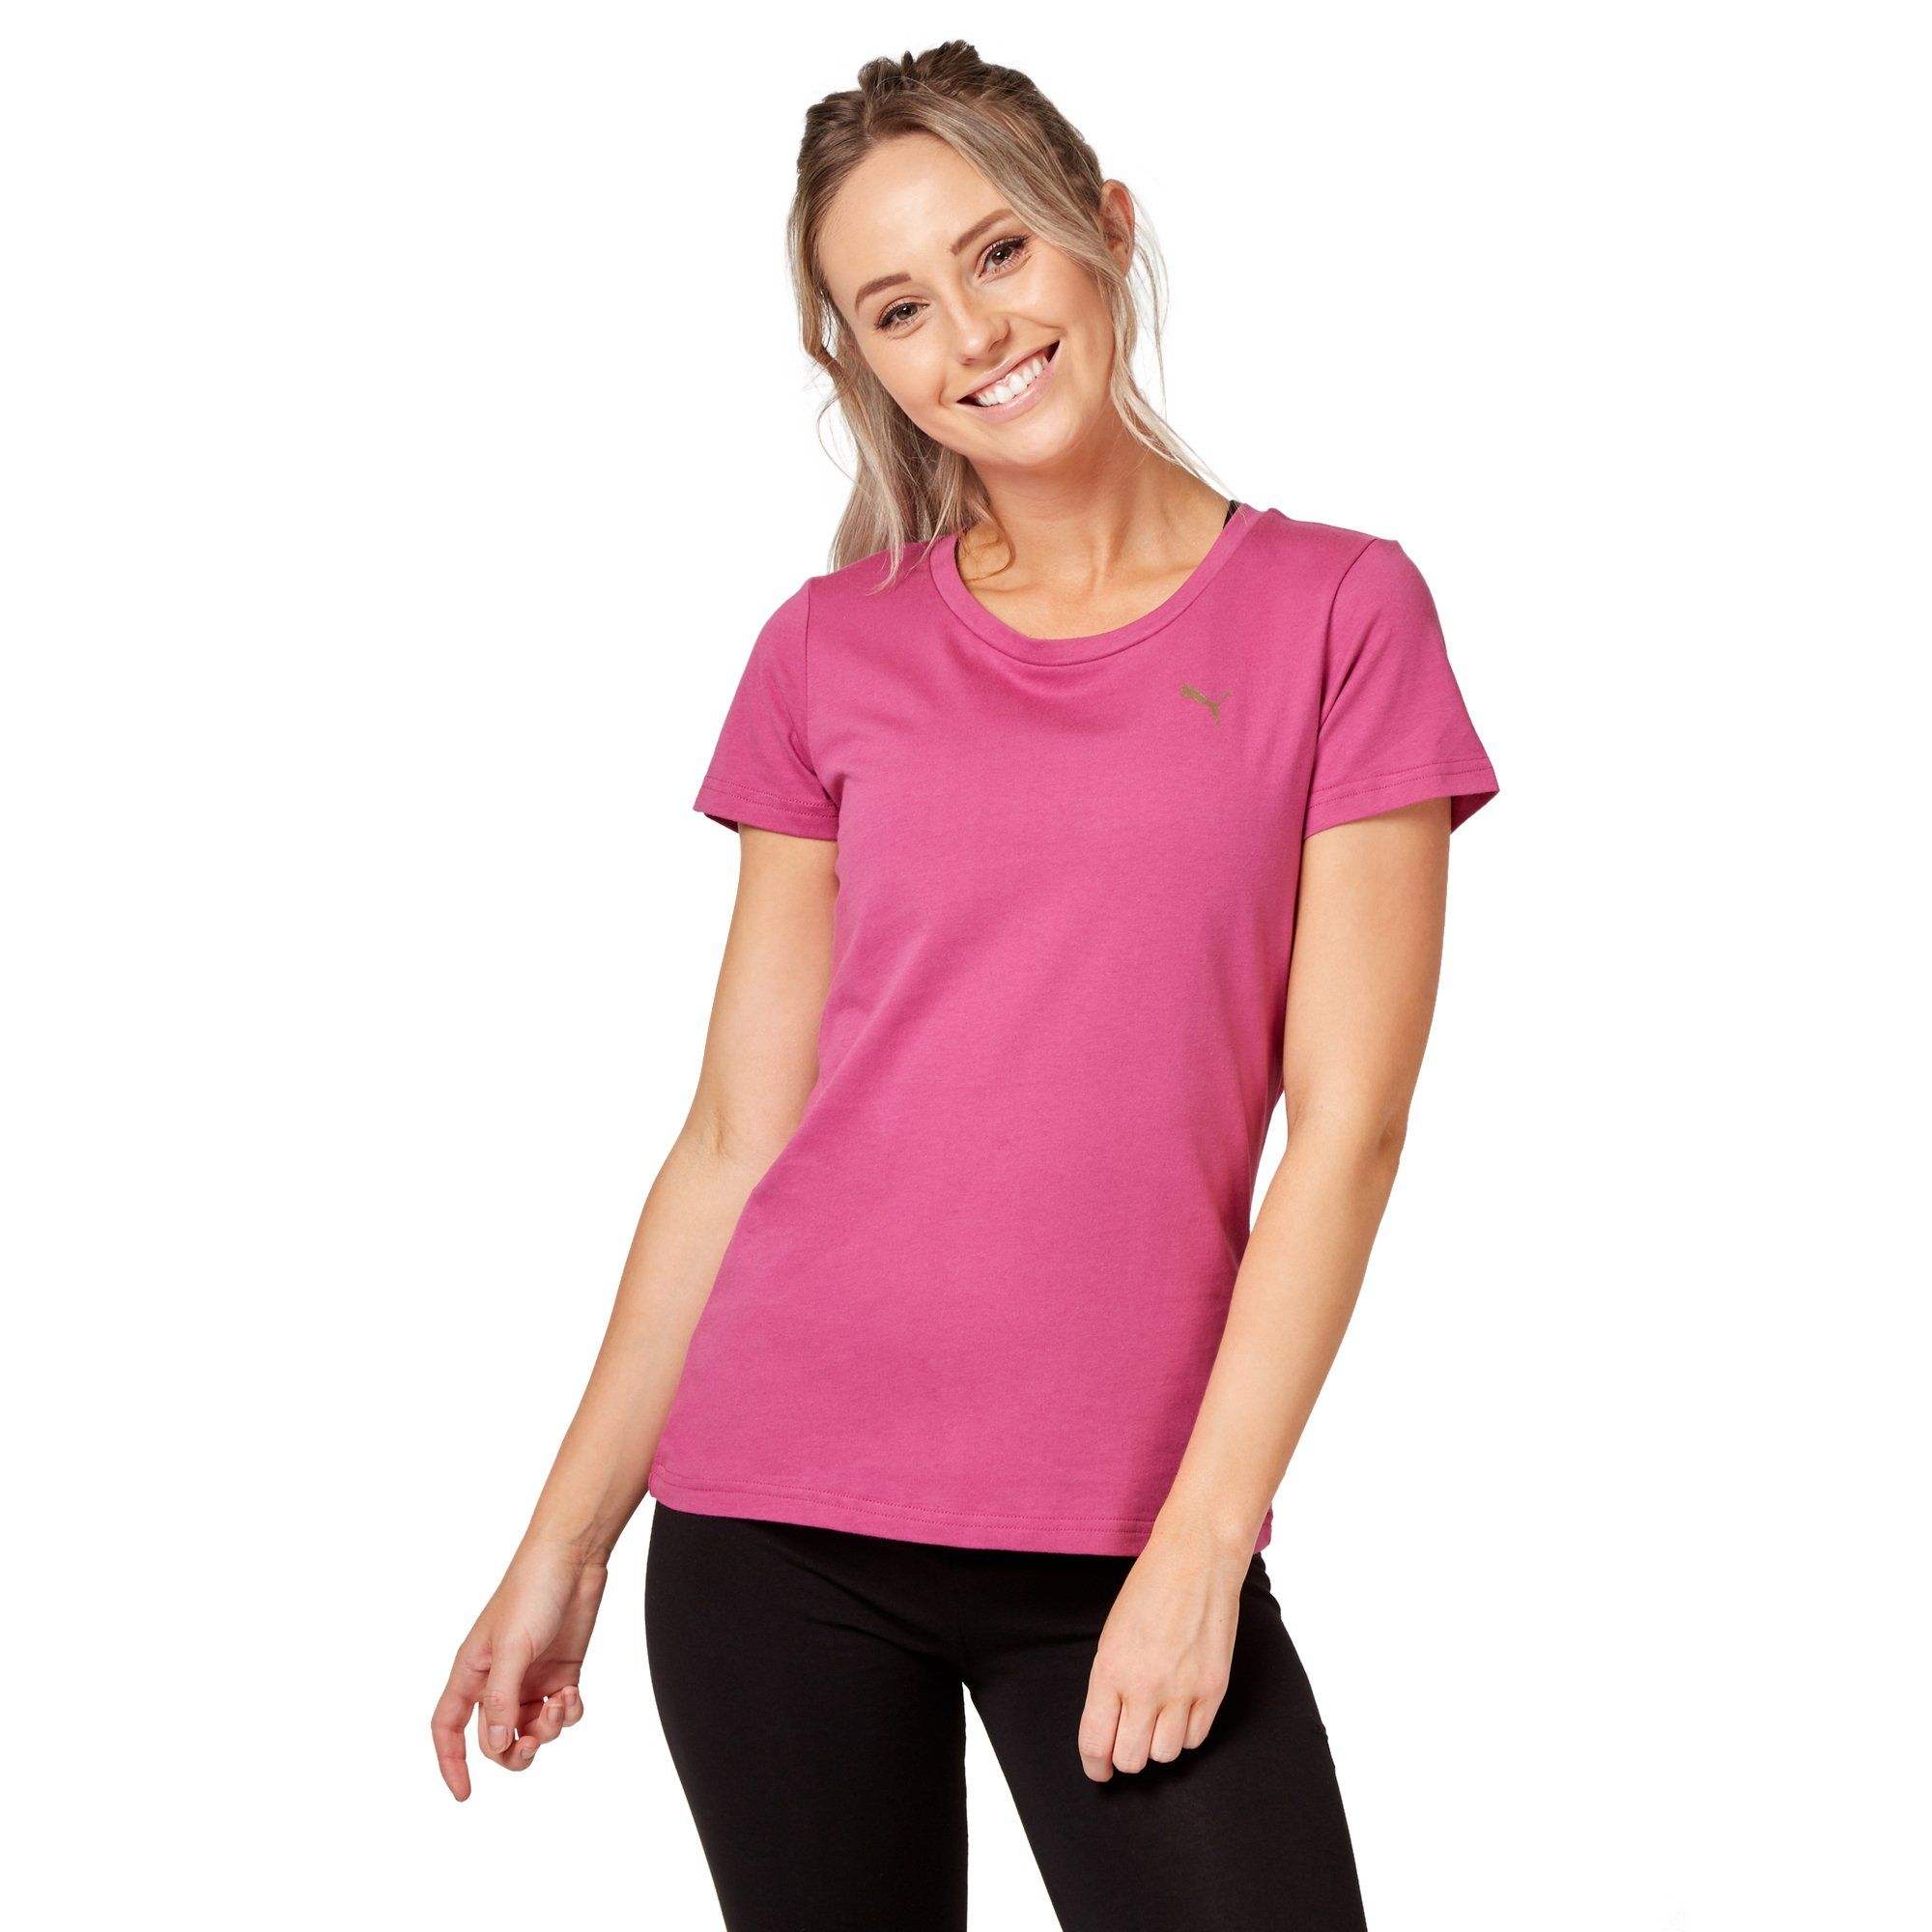 Puma Women's Athletic Tee - Magenta Haze Apparel Puma  (2122609426491)